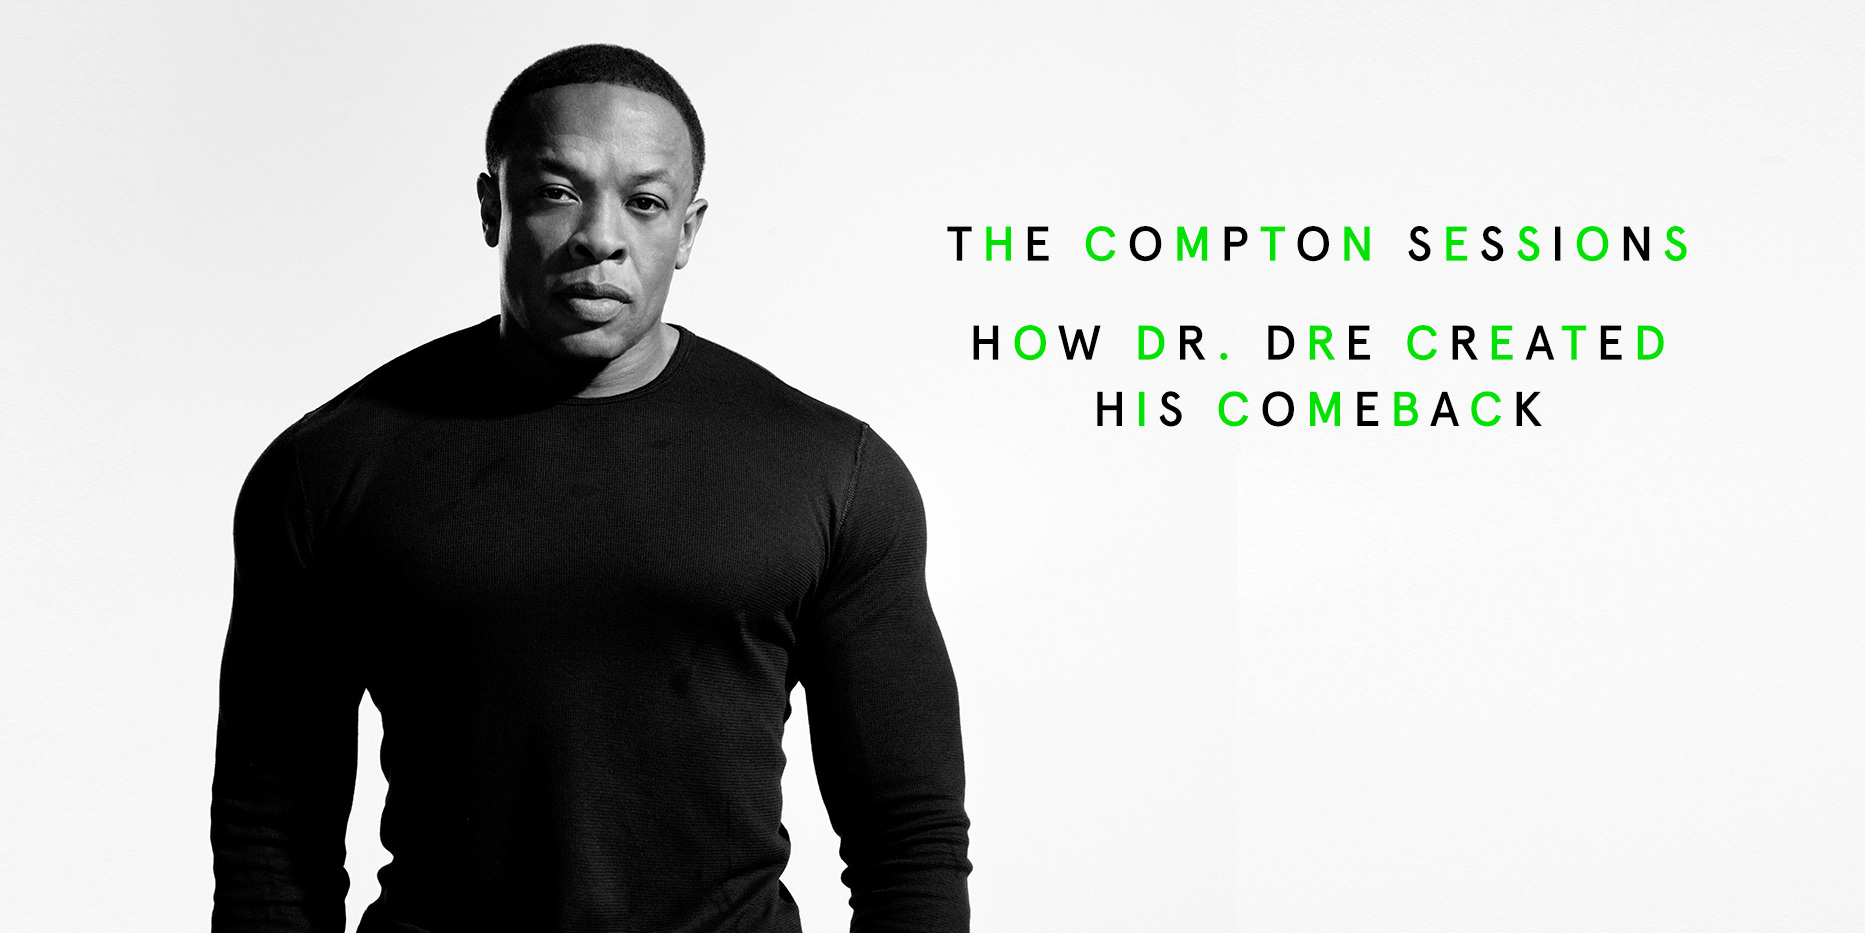 Overtones The Compton Sessions How Dr Dre Created His Comeback